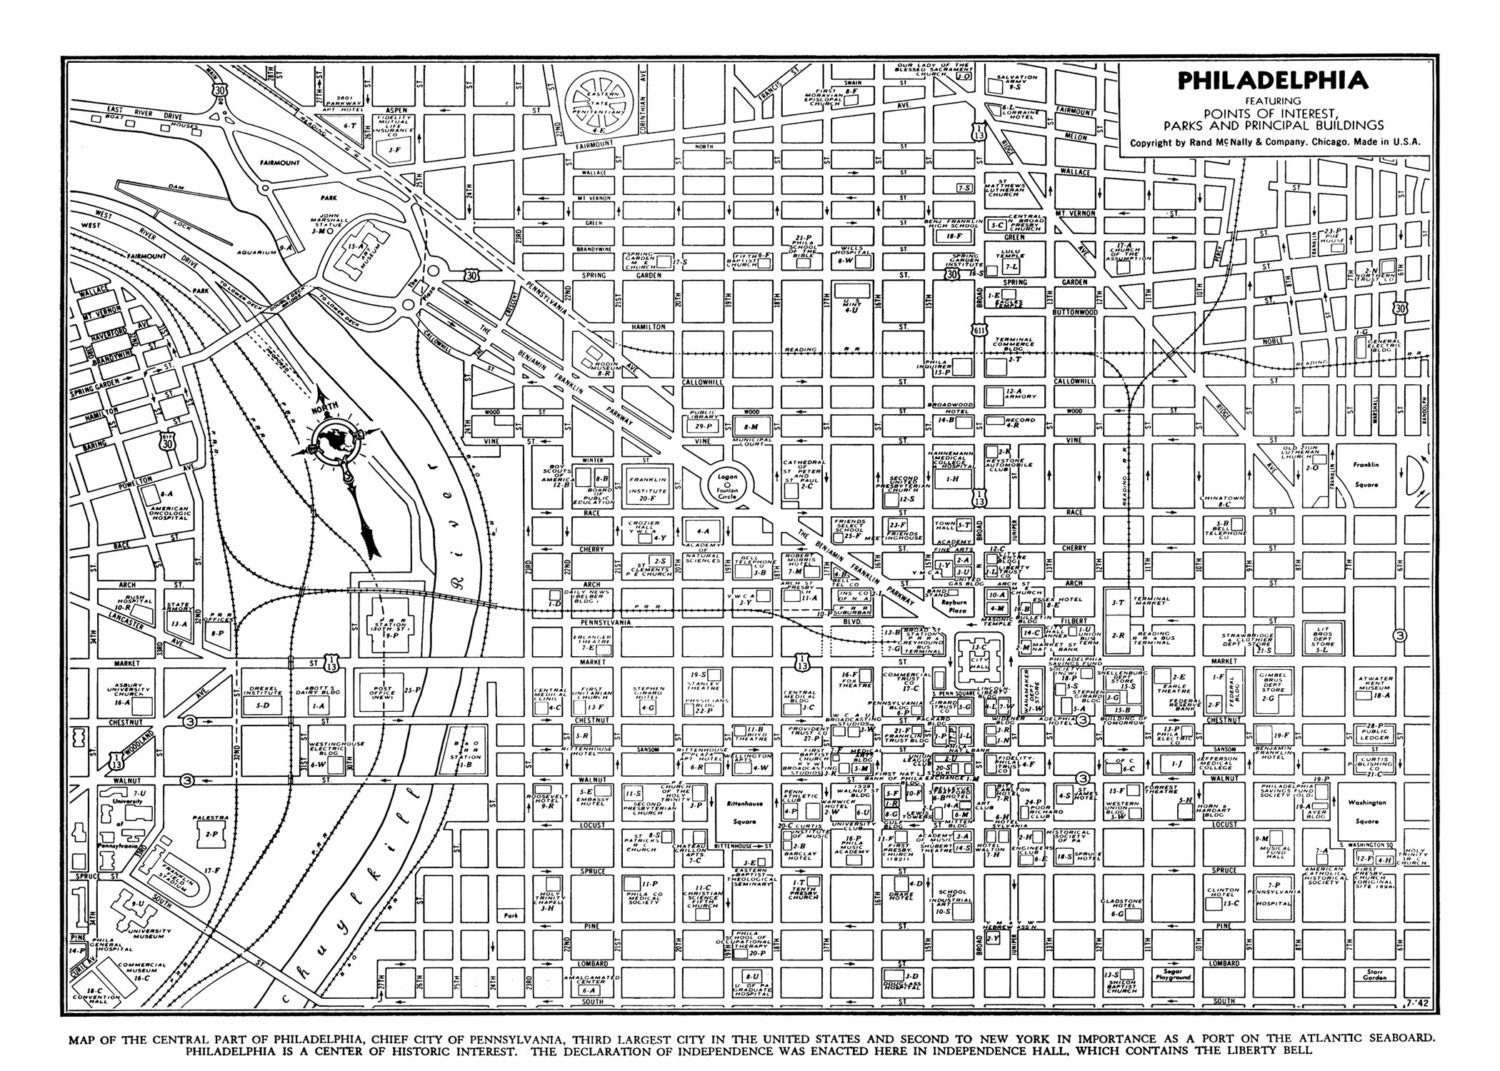 This is a photo of Ridiculous Printable Map of Philadelphia